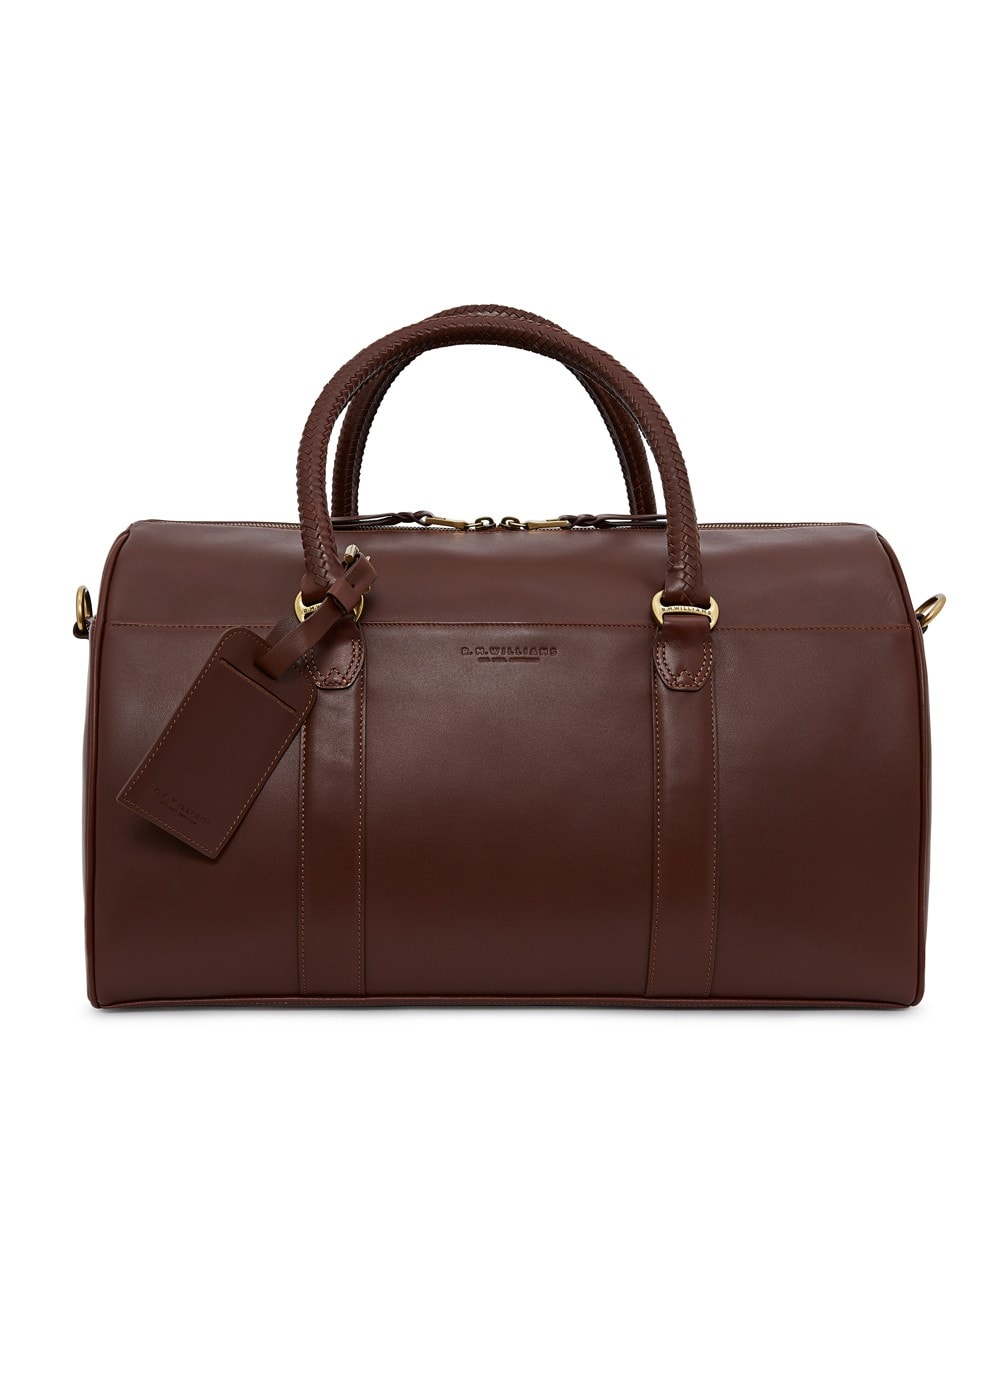 R.M.Williams overnight bag - £390 - Travel in style with this understated and functional design that has more than enough space for a weekend break